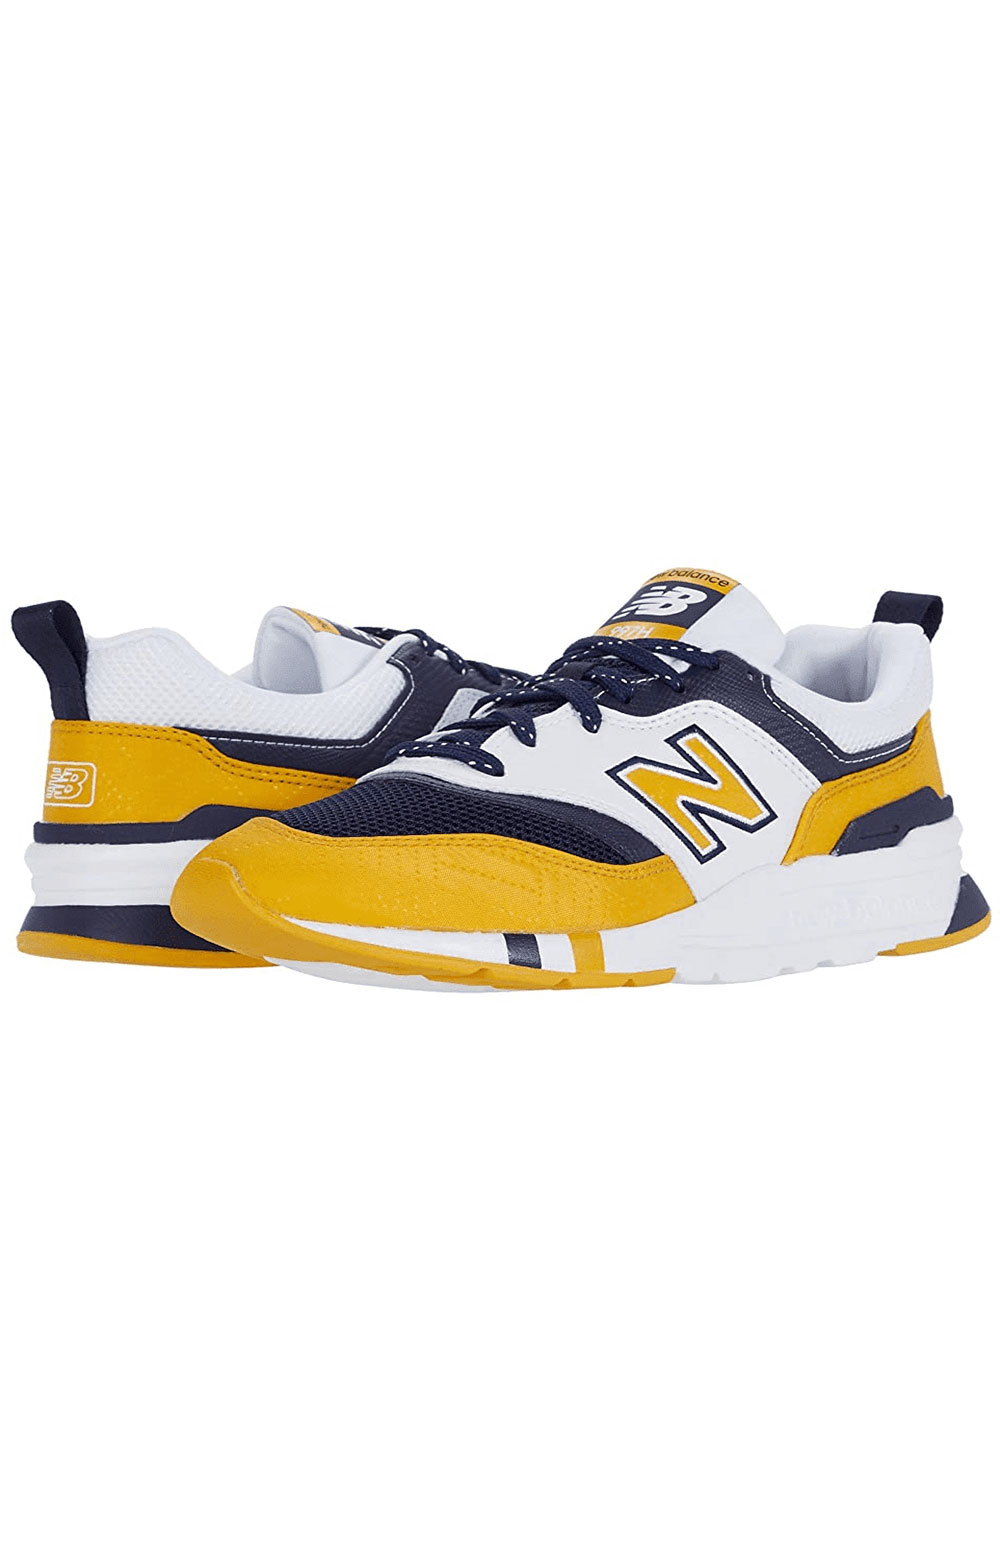 (CM997HBY) 997H Shoes - Yellow/Navy 7